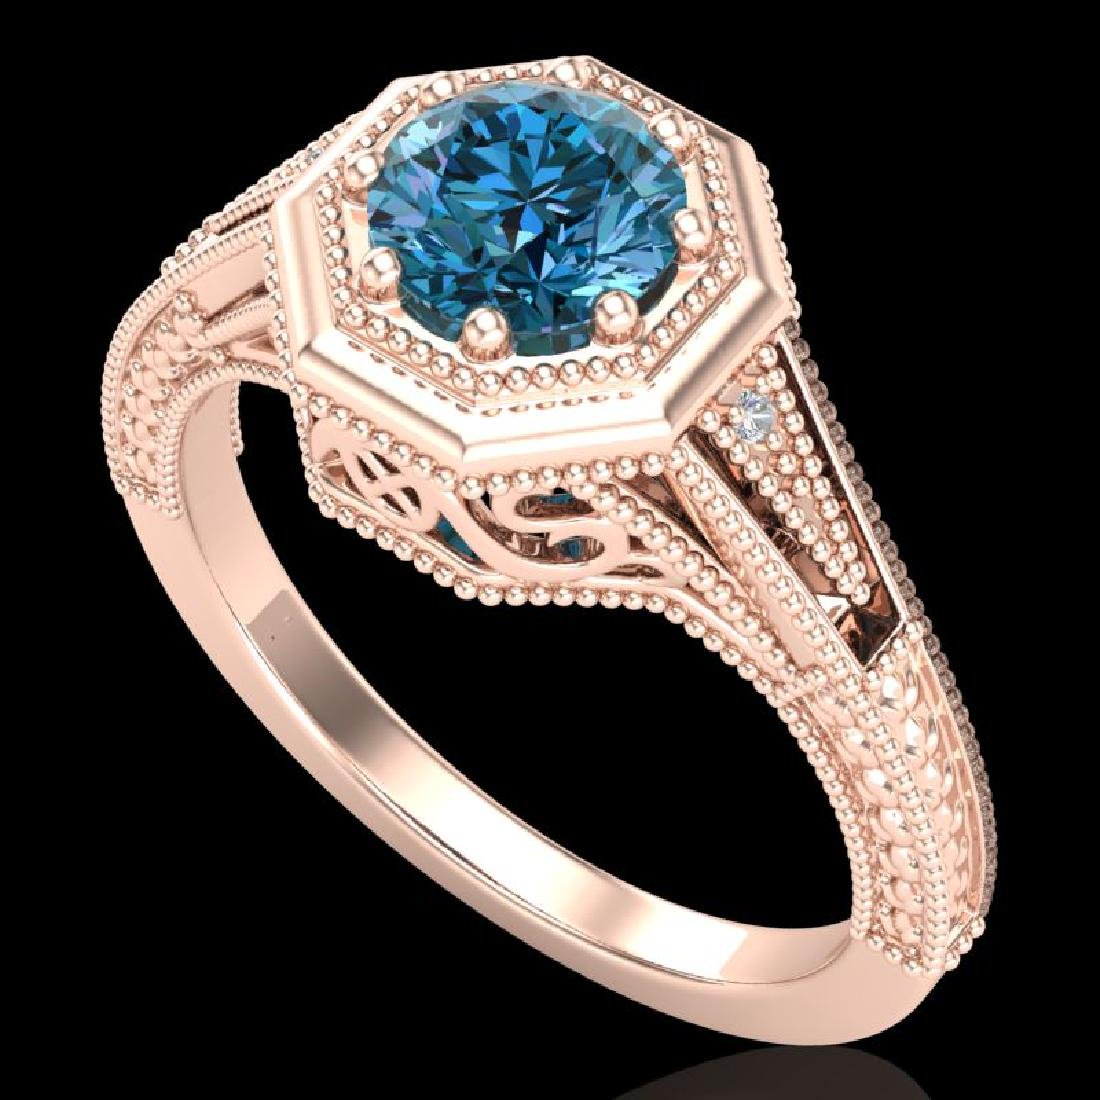 0.84 CTW Fancy Intense Blue Diamond Solitaire Art Deco